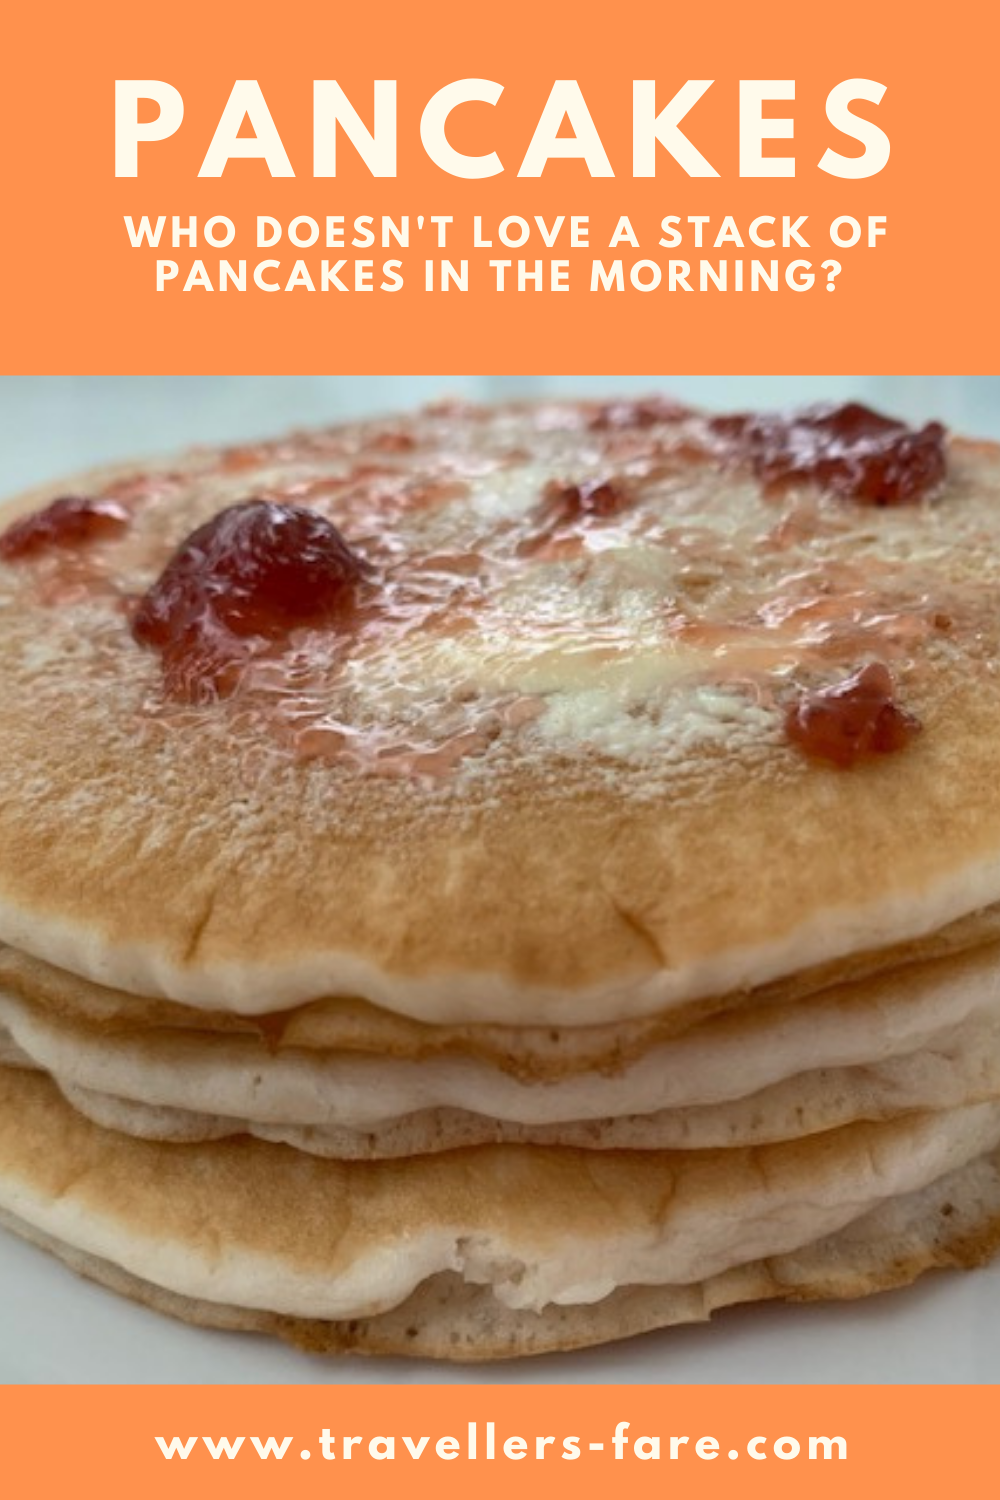 A Stack Of 4 Pancakes With Butter And Strawberry Jam.